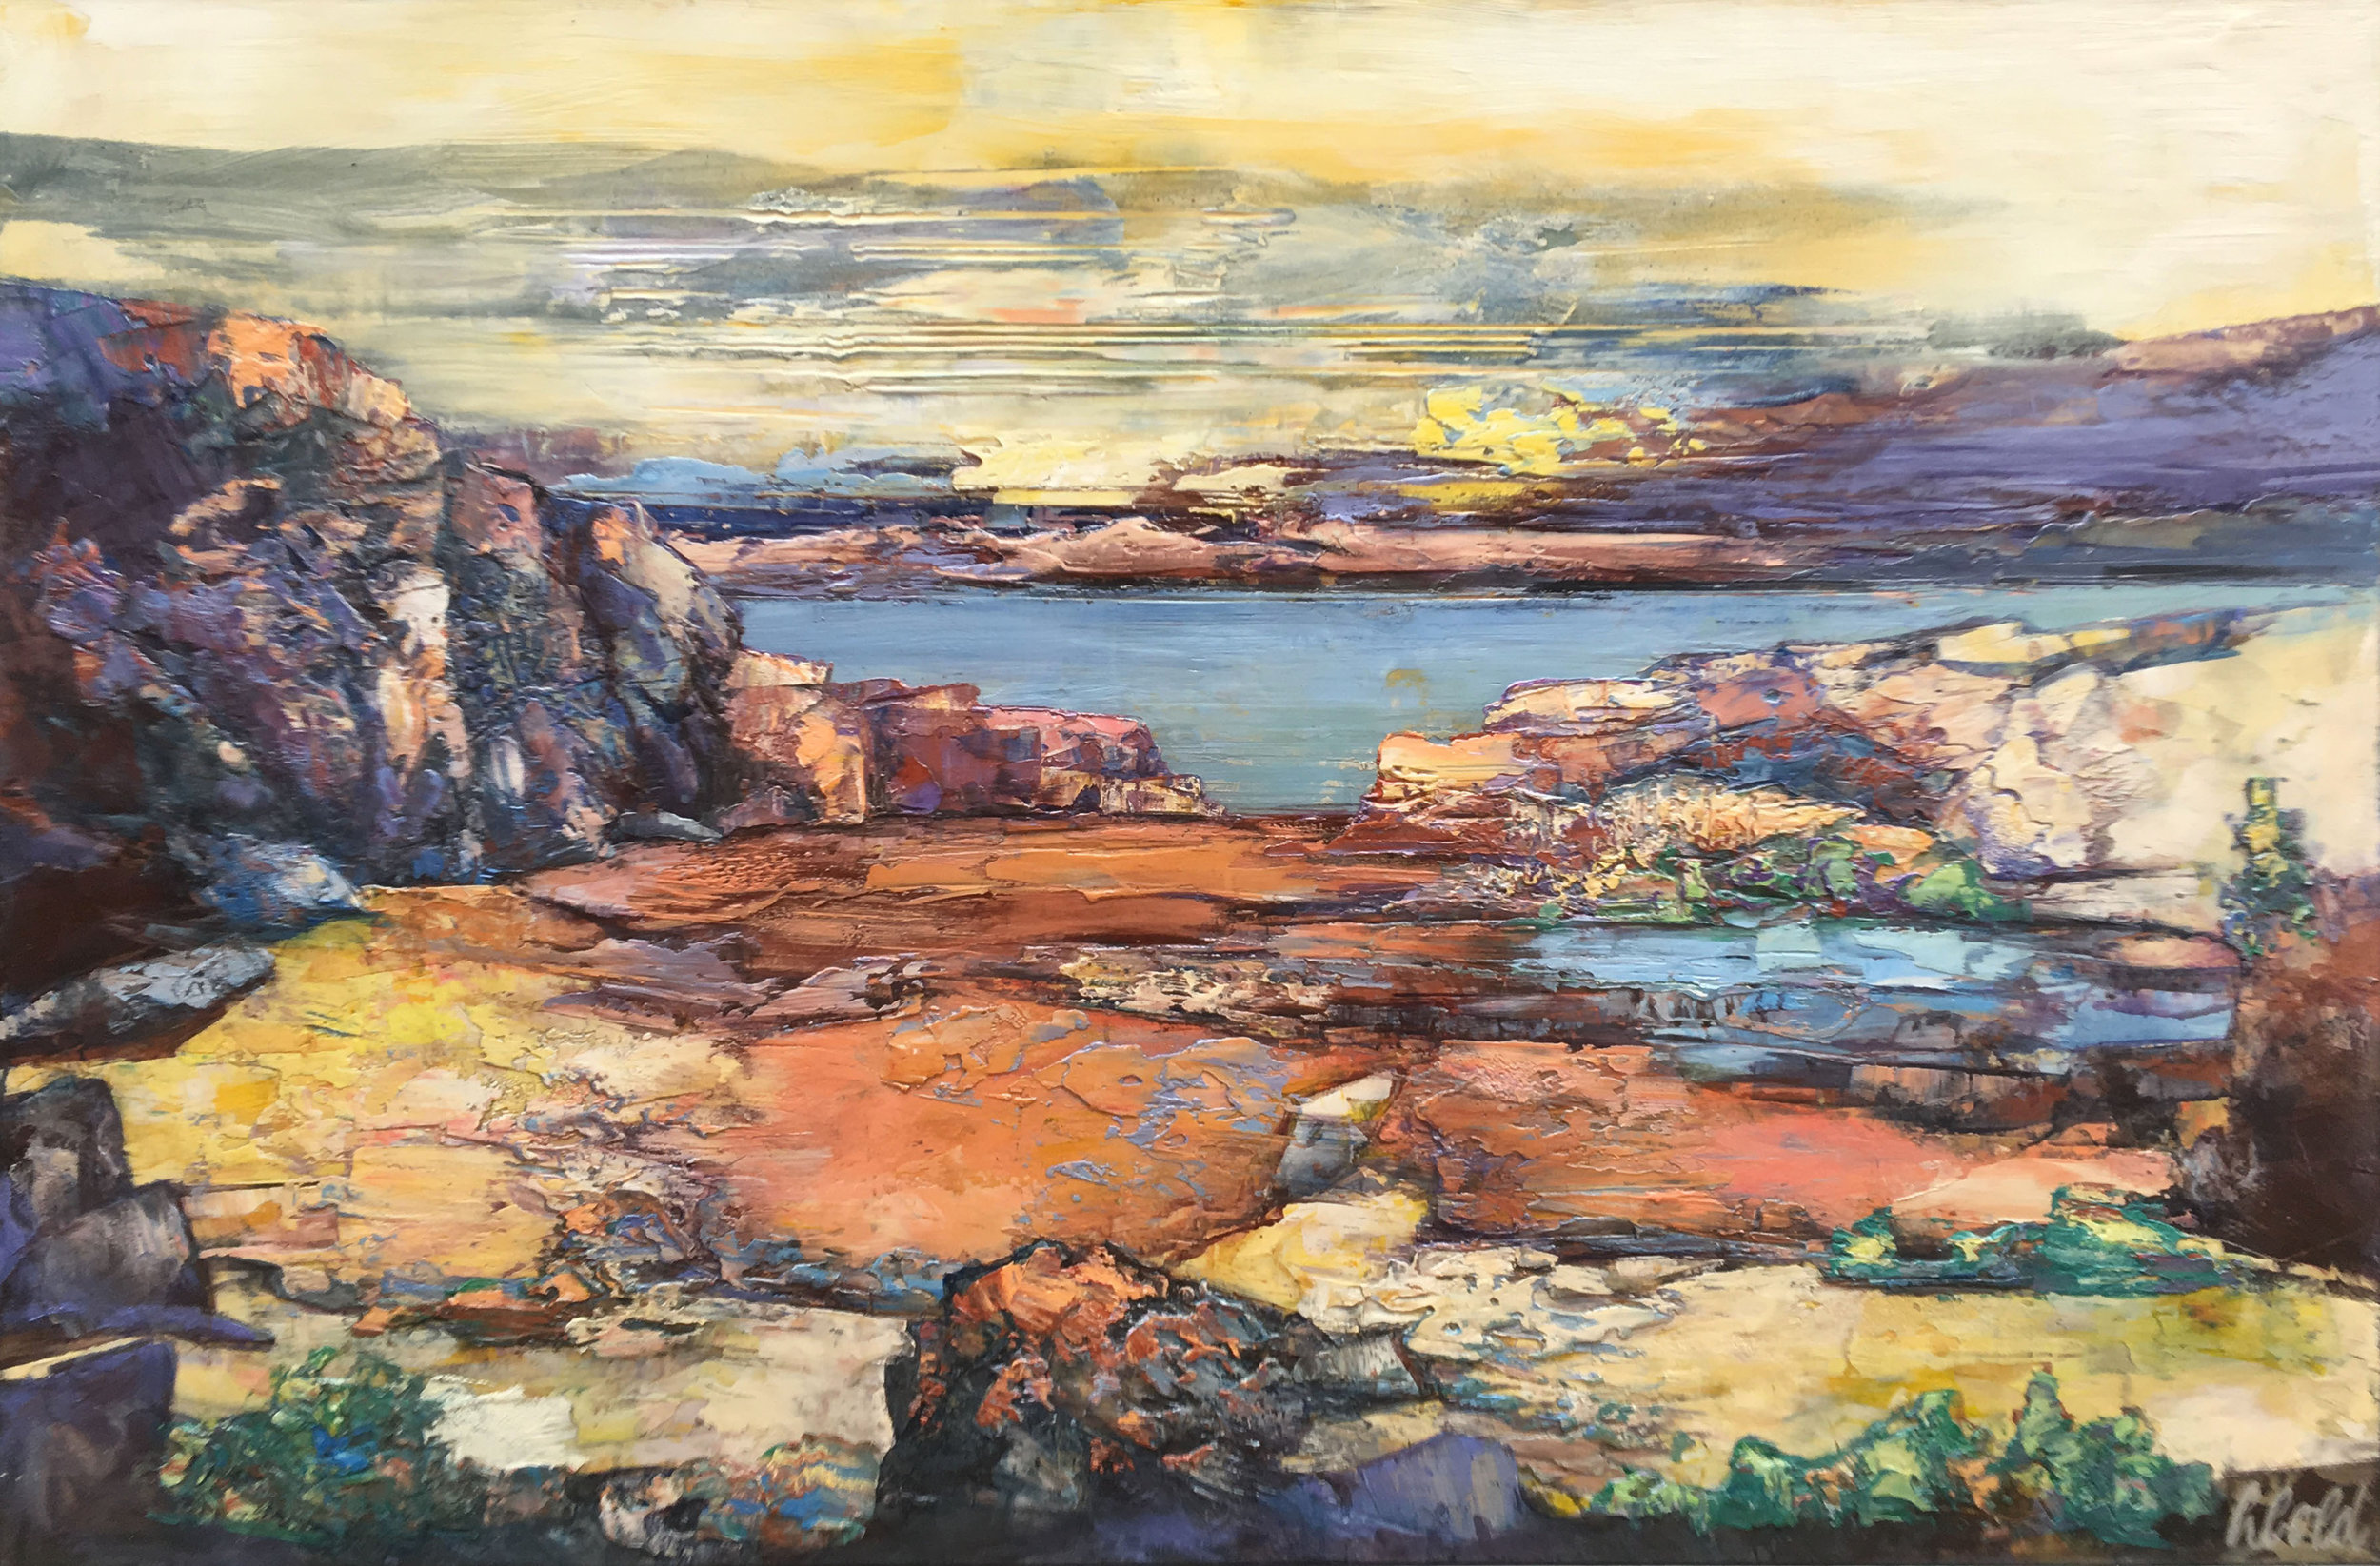 EAST OF THE COLUMBIA GORGE  47″ X 70.5″ / Mixed Media